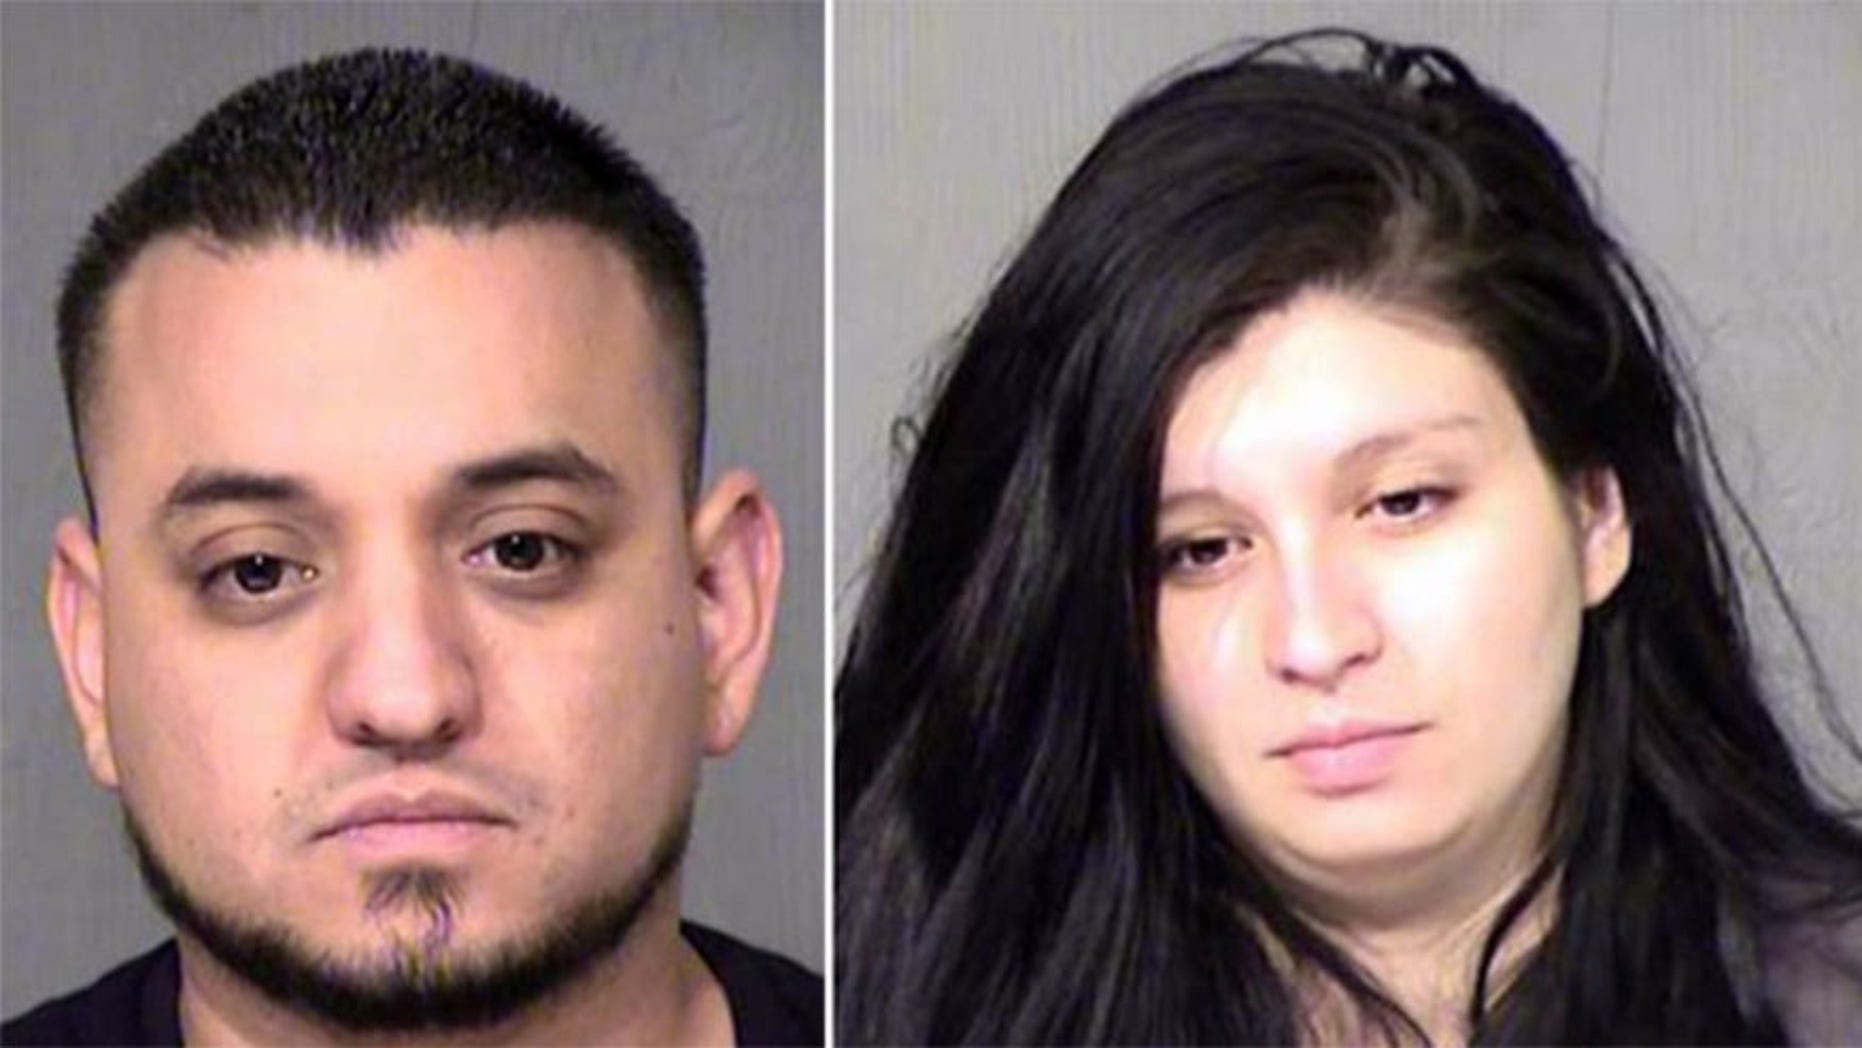 Arizona couple bought high-powered rifle for Mexican cartel